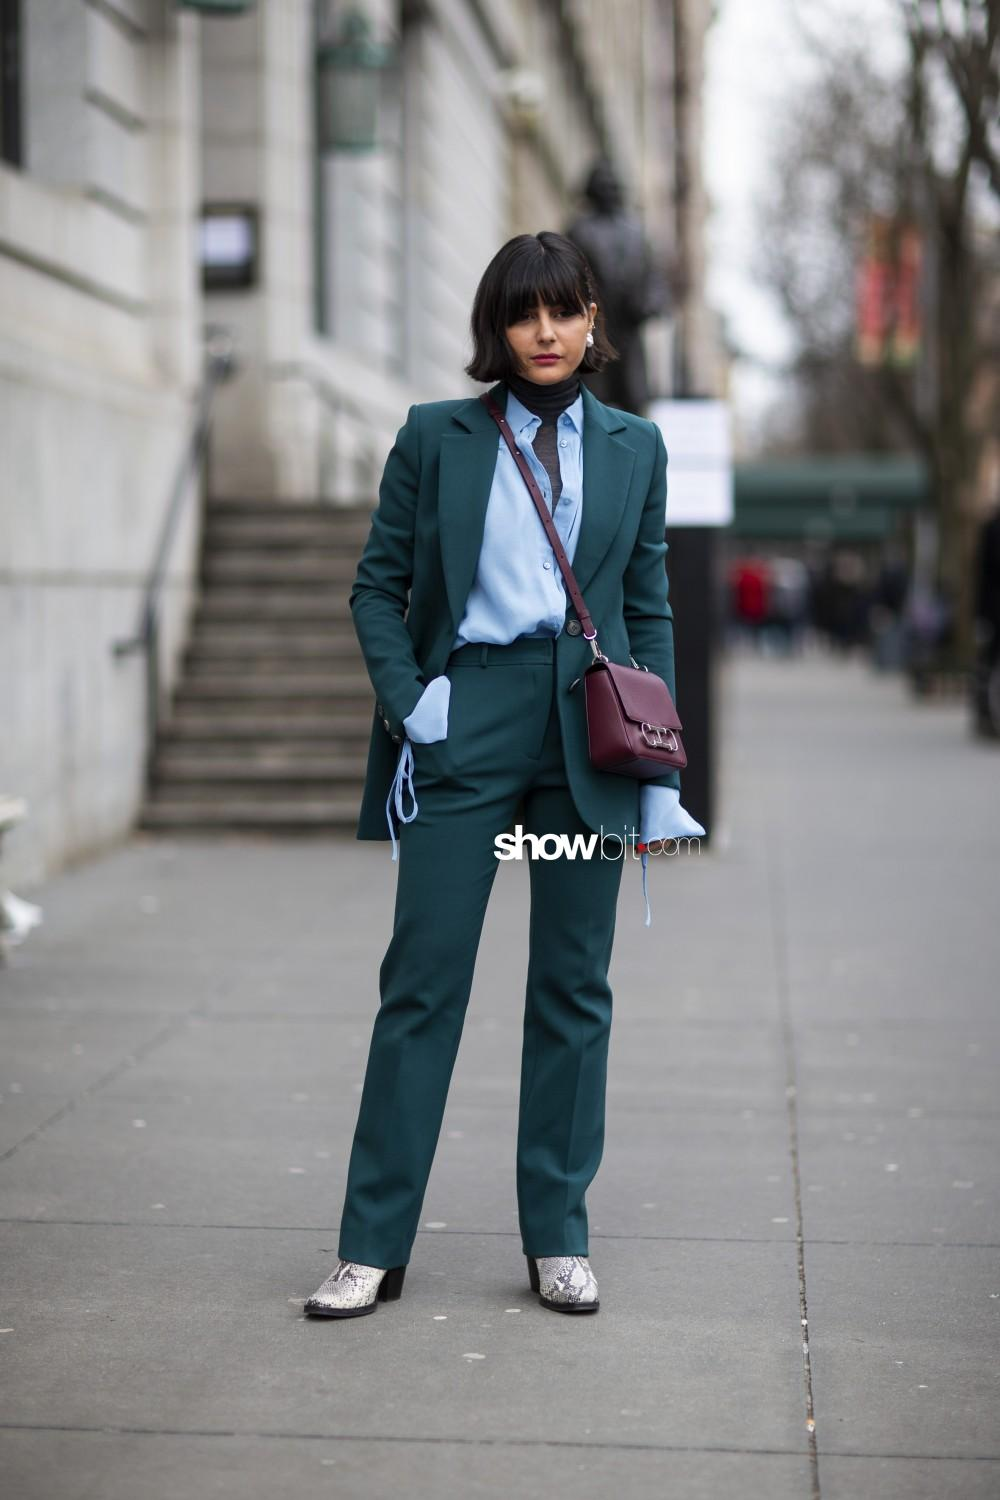 The Best Street Style pictures from New York Fashion Week